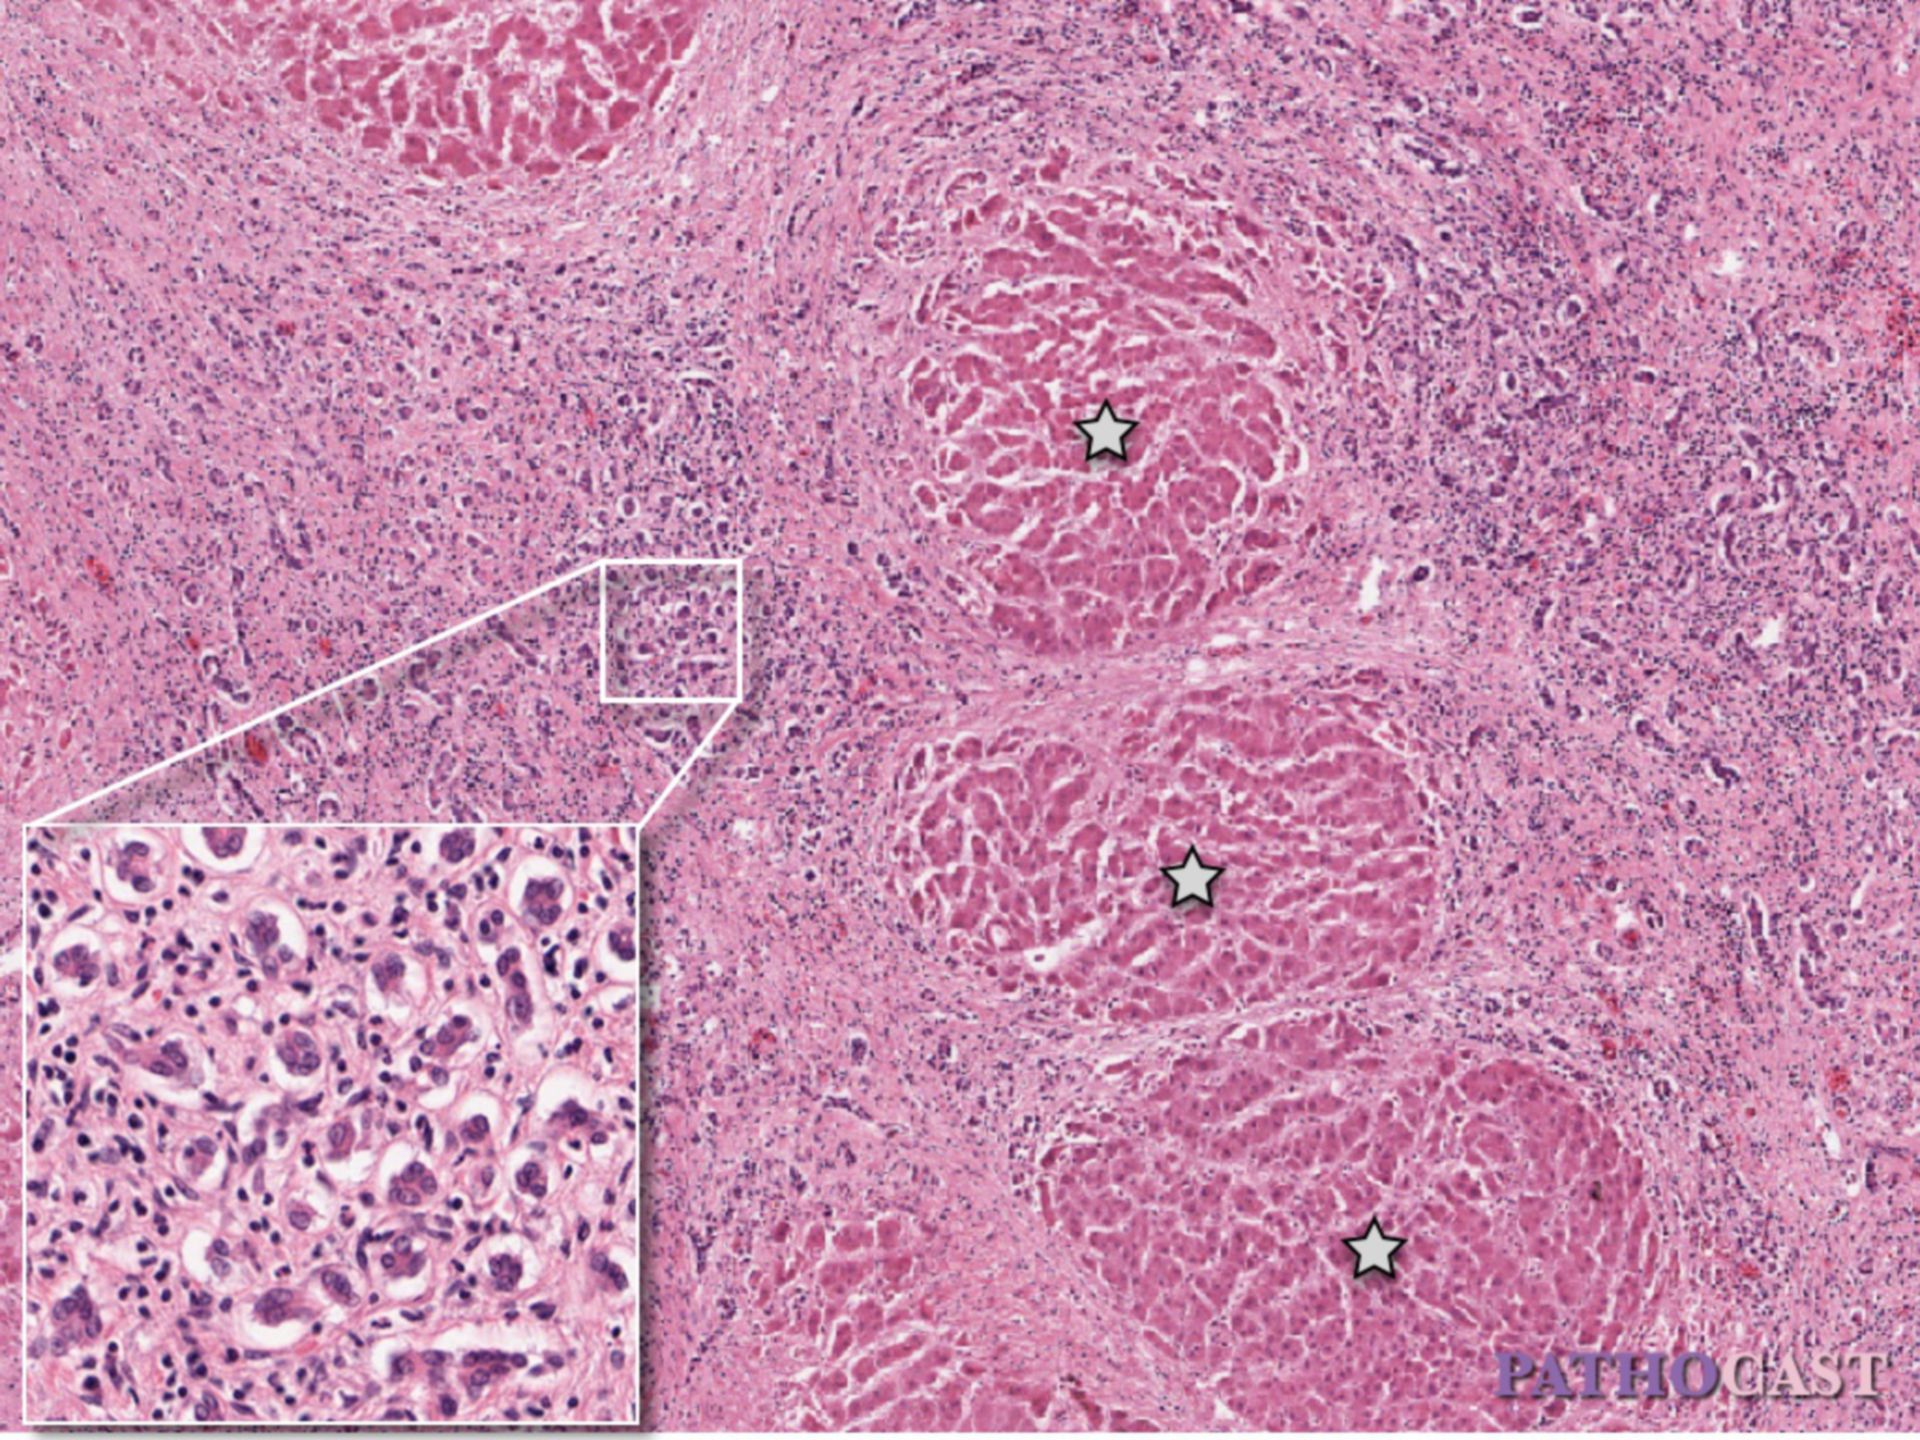 Proliferations liver cirrhosis with bile duct